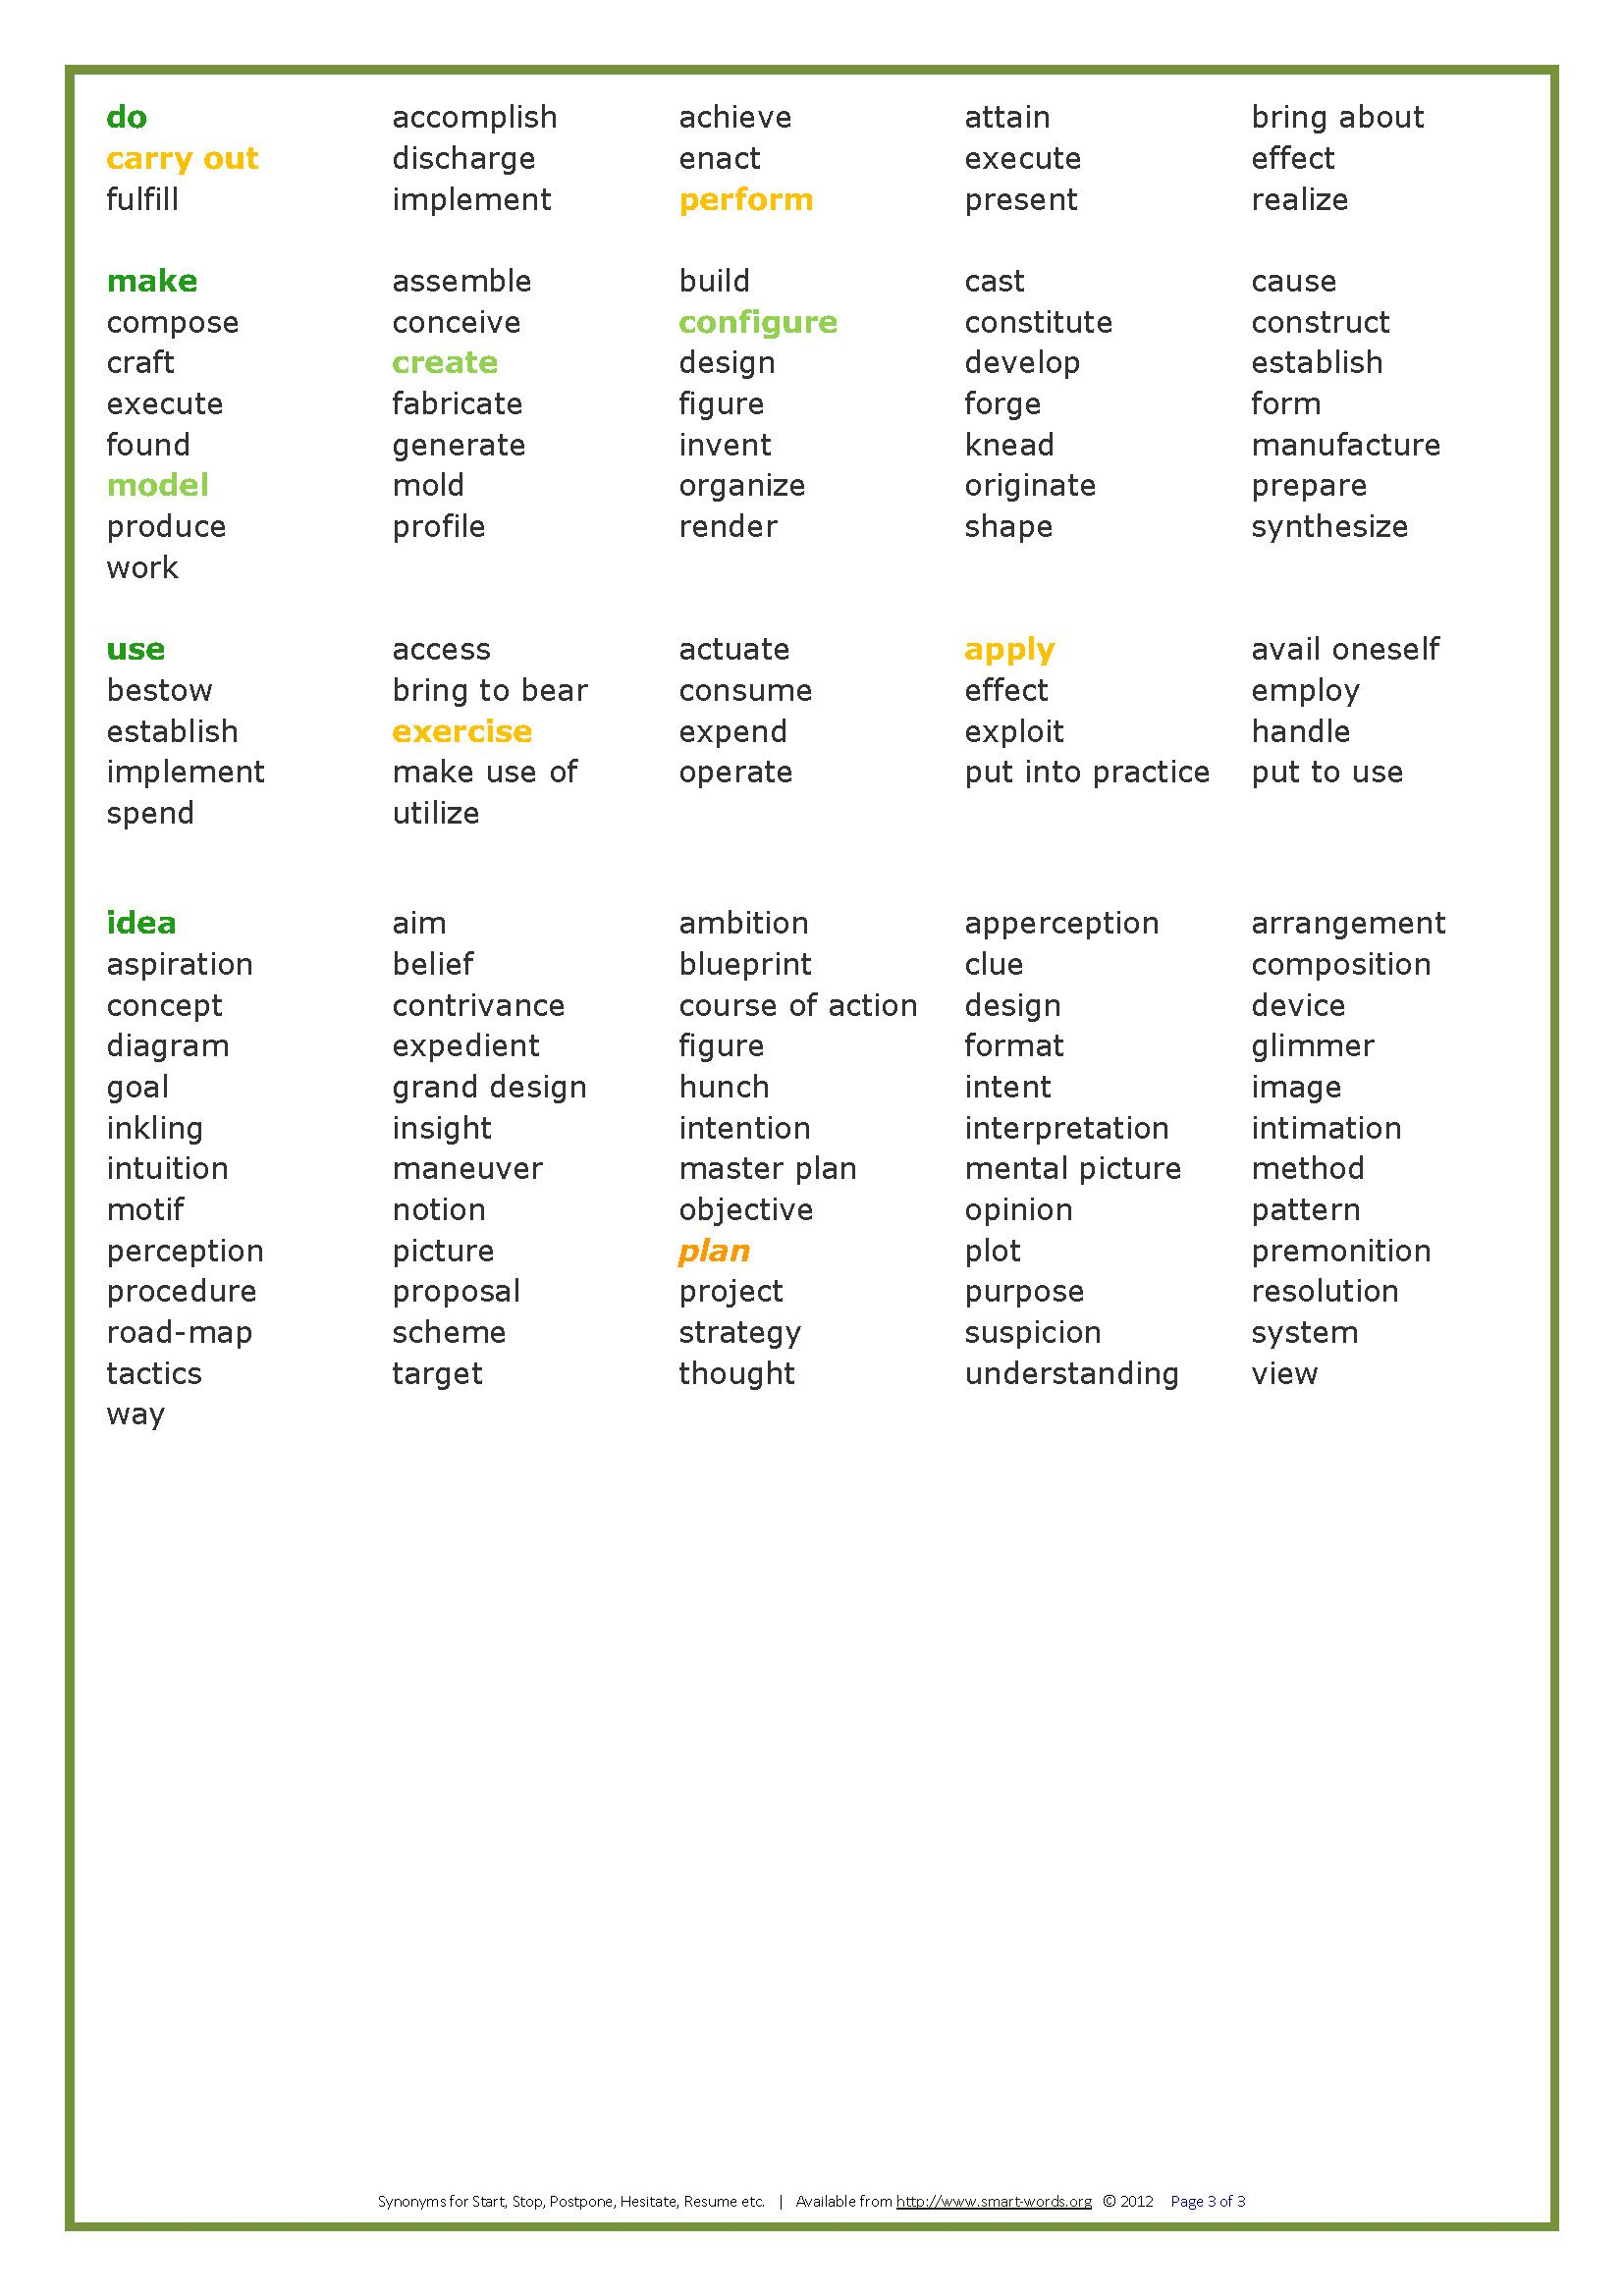 Synonyms actions 3 weekly pins by werner kuhn pinterest synonyms actions 3 malvernweather Images